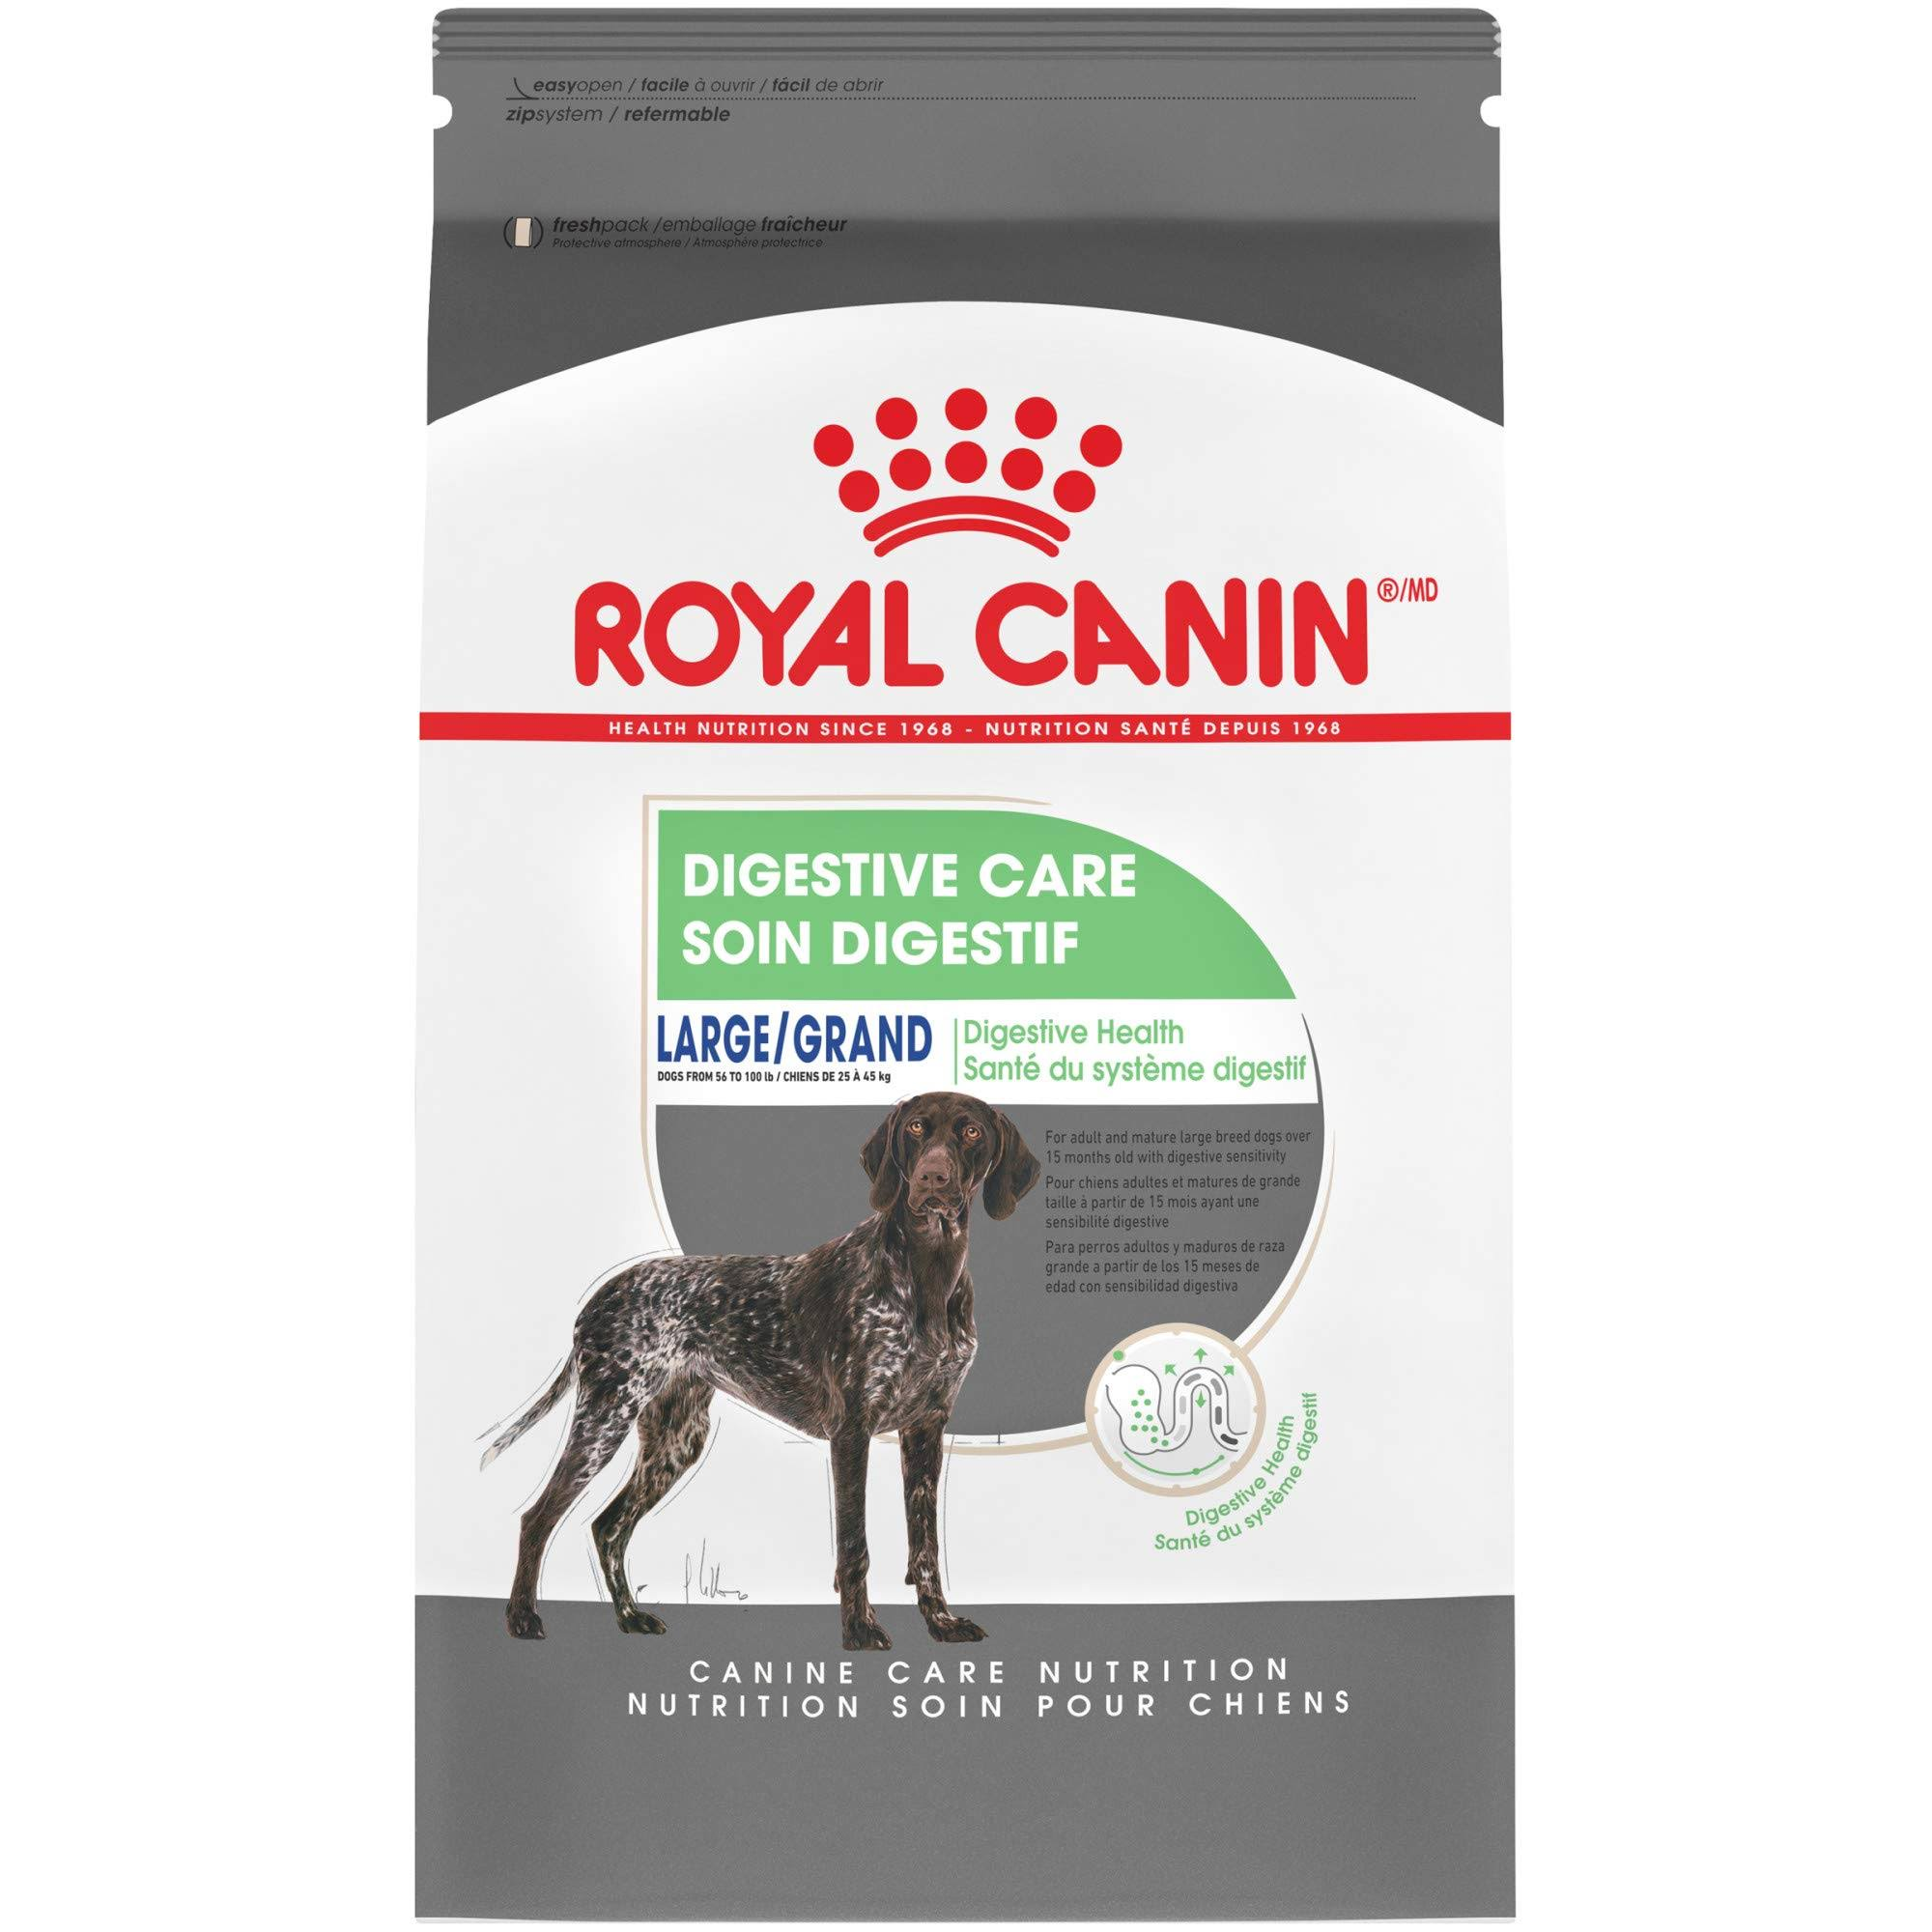 Royal Canin Maxi Nutrition Sensitive Digestion Dry Dog Food - 30lbs